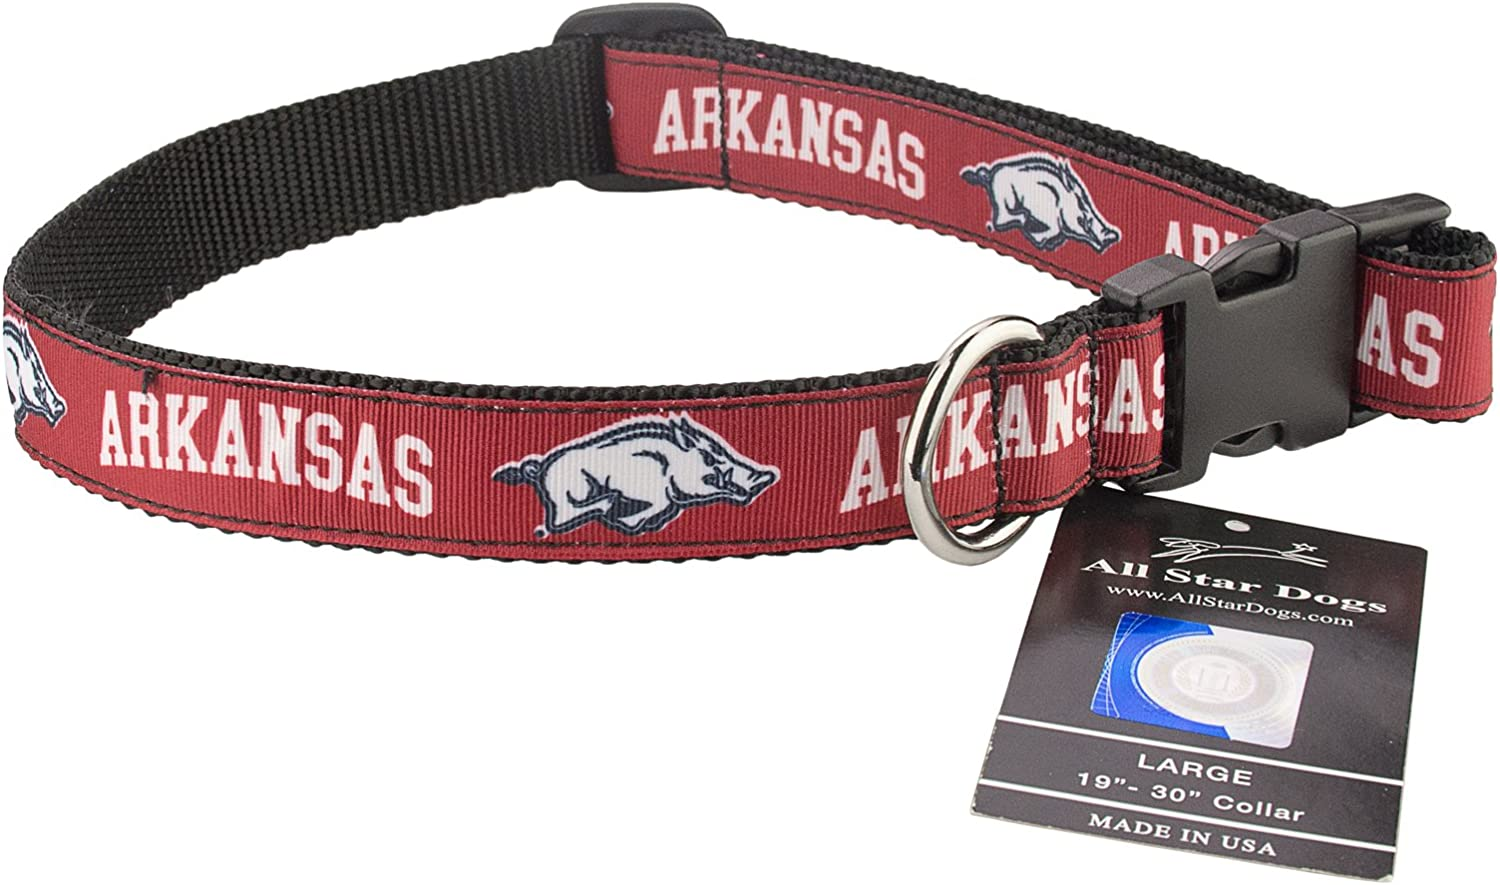 All Star Dogs NCAA Arkansas Razorbacks Dog Leash Cardinal